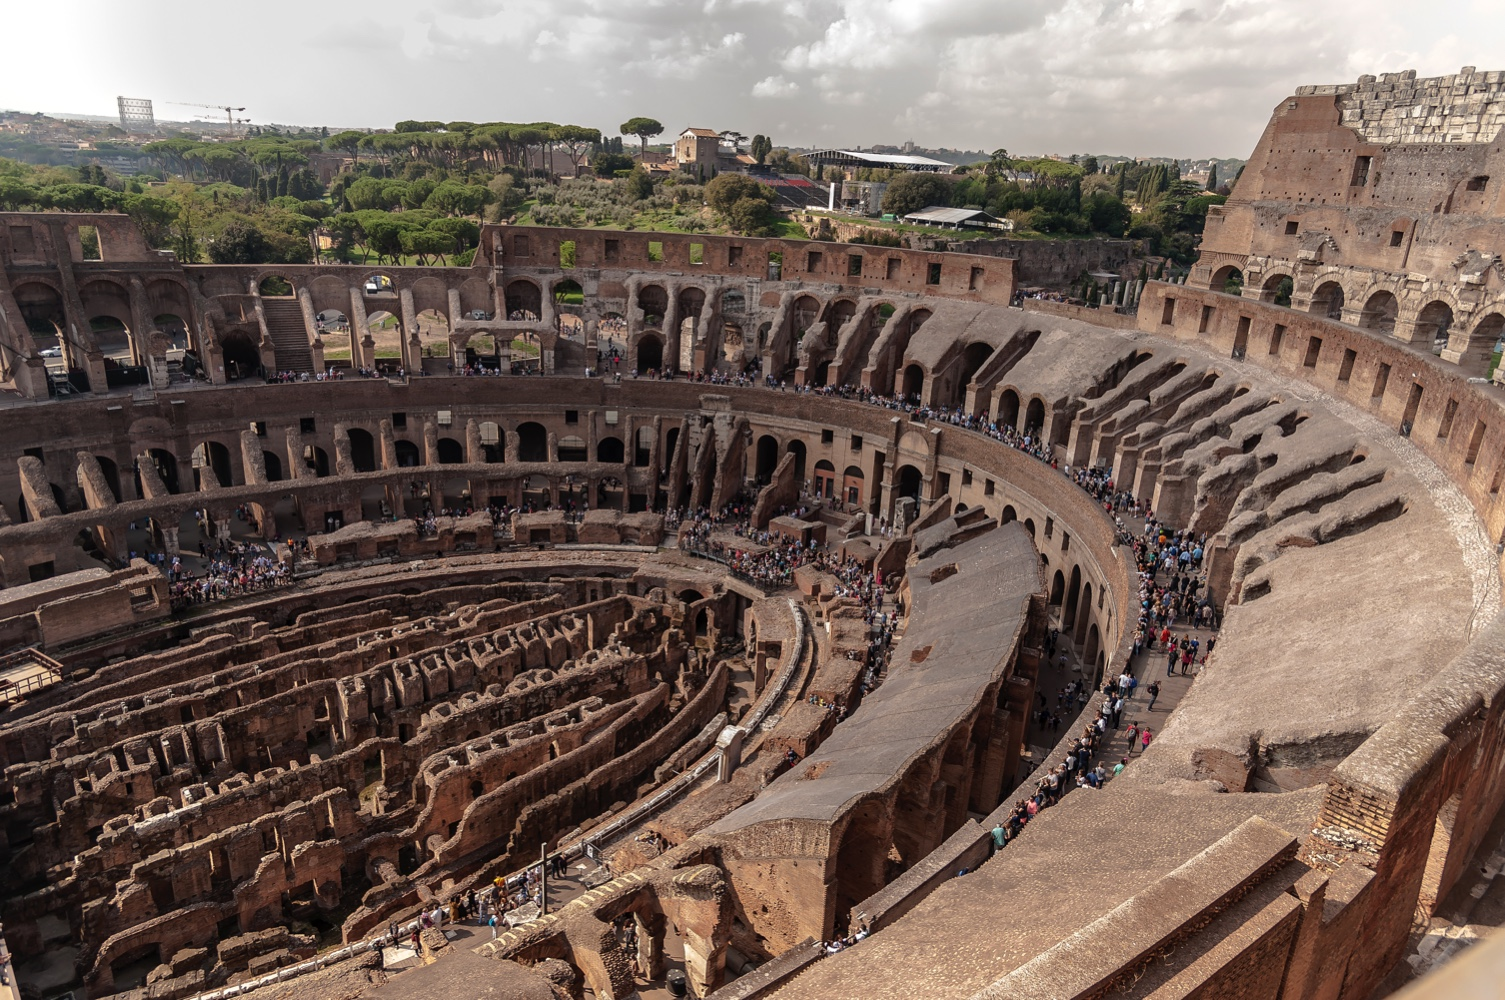 ROME, ITALY - OCTOBER 3: Overview taken from the top of the Colosseum during a press preview of the opening of the 4th and 5th level of the monument. on October 3, 2017 in Rome, Italy. (Photo by Stefano Montesi - Corbis/Corbis via Getty Images)